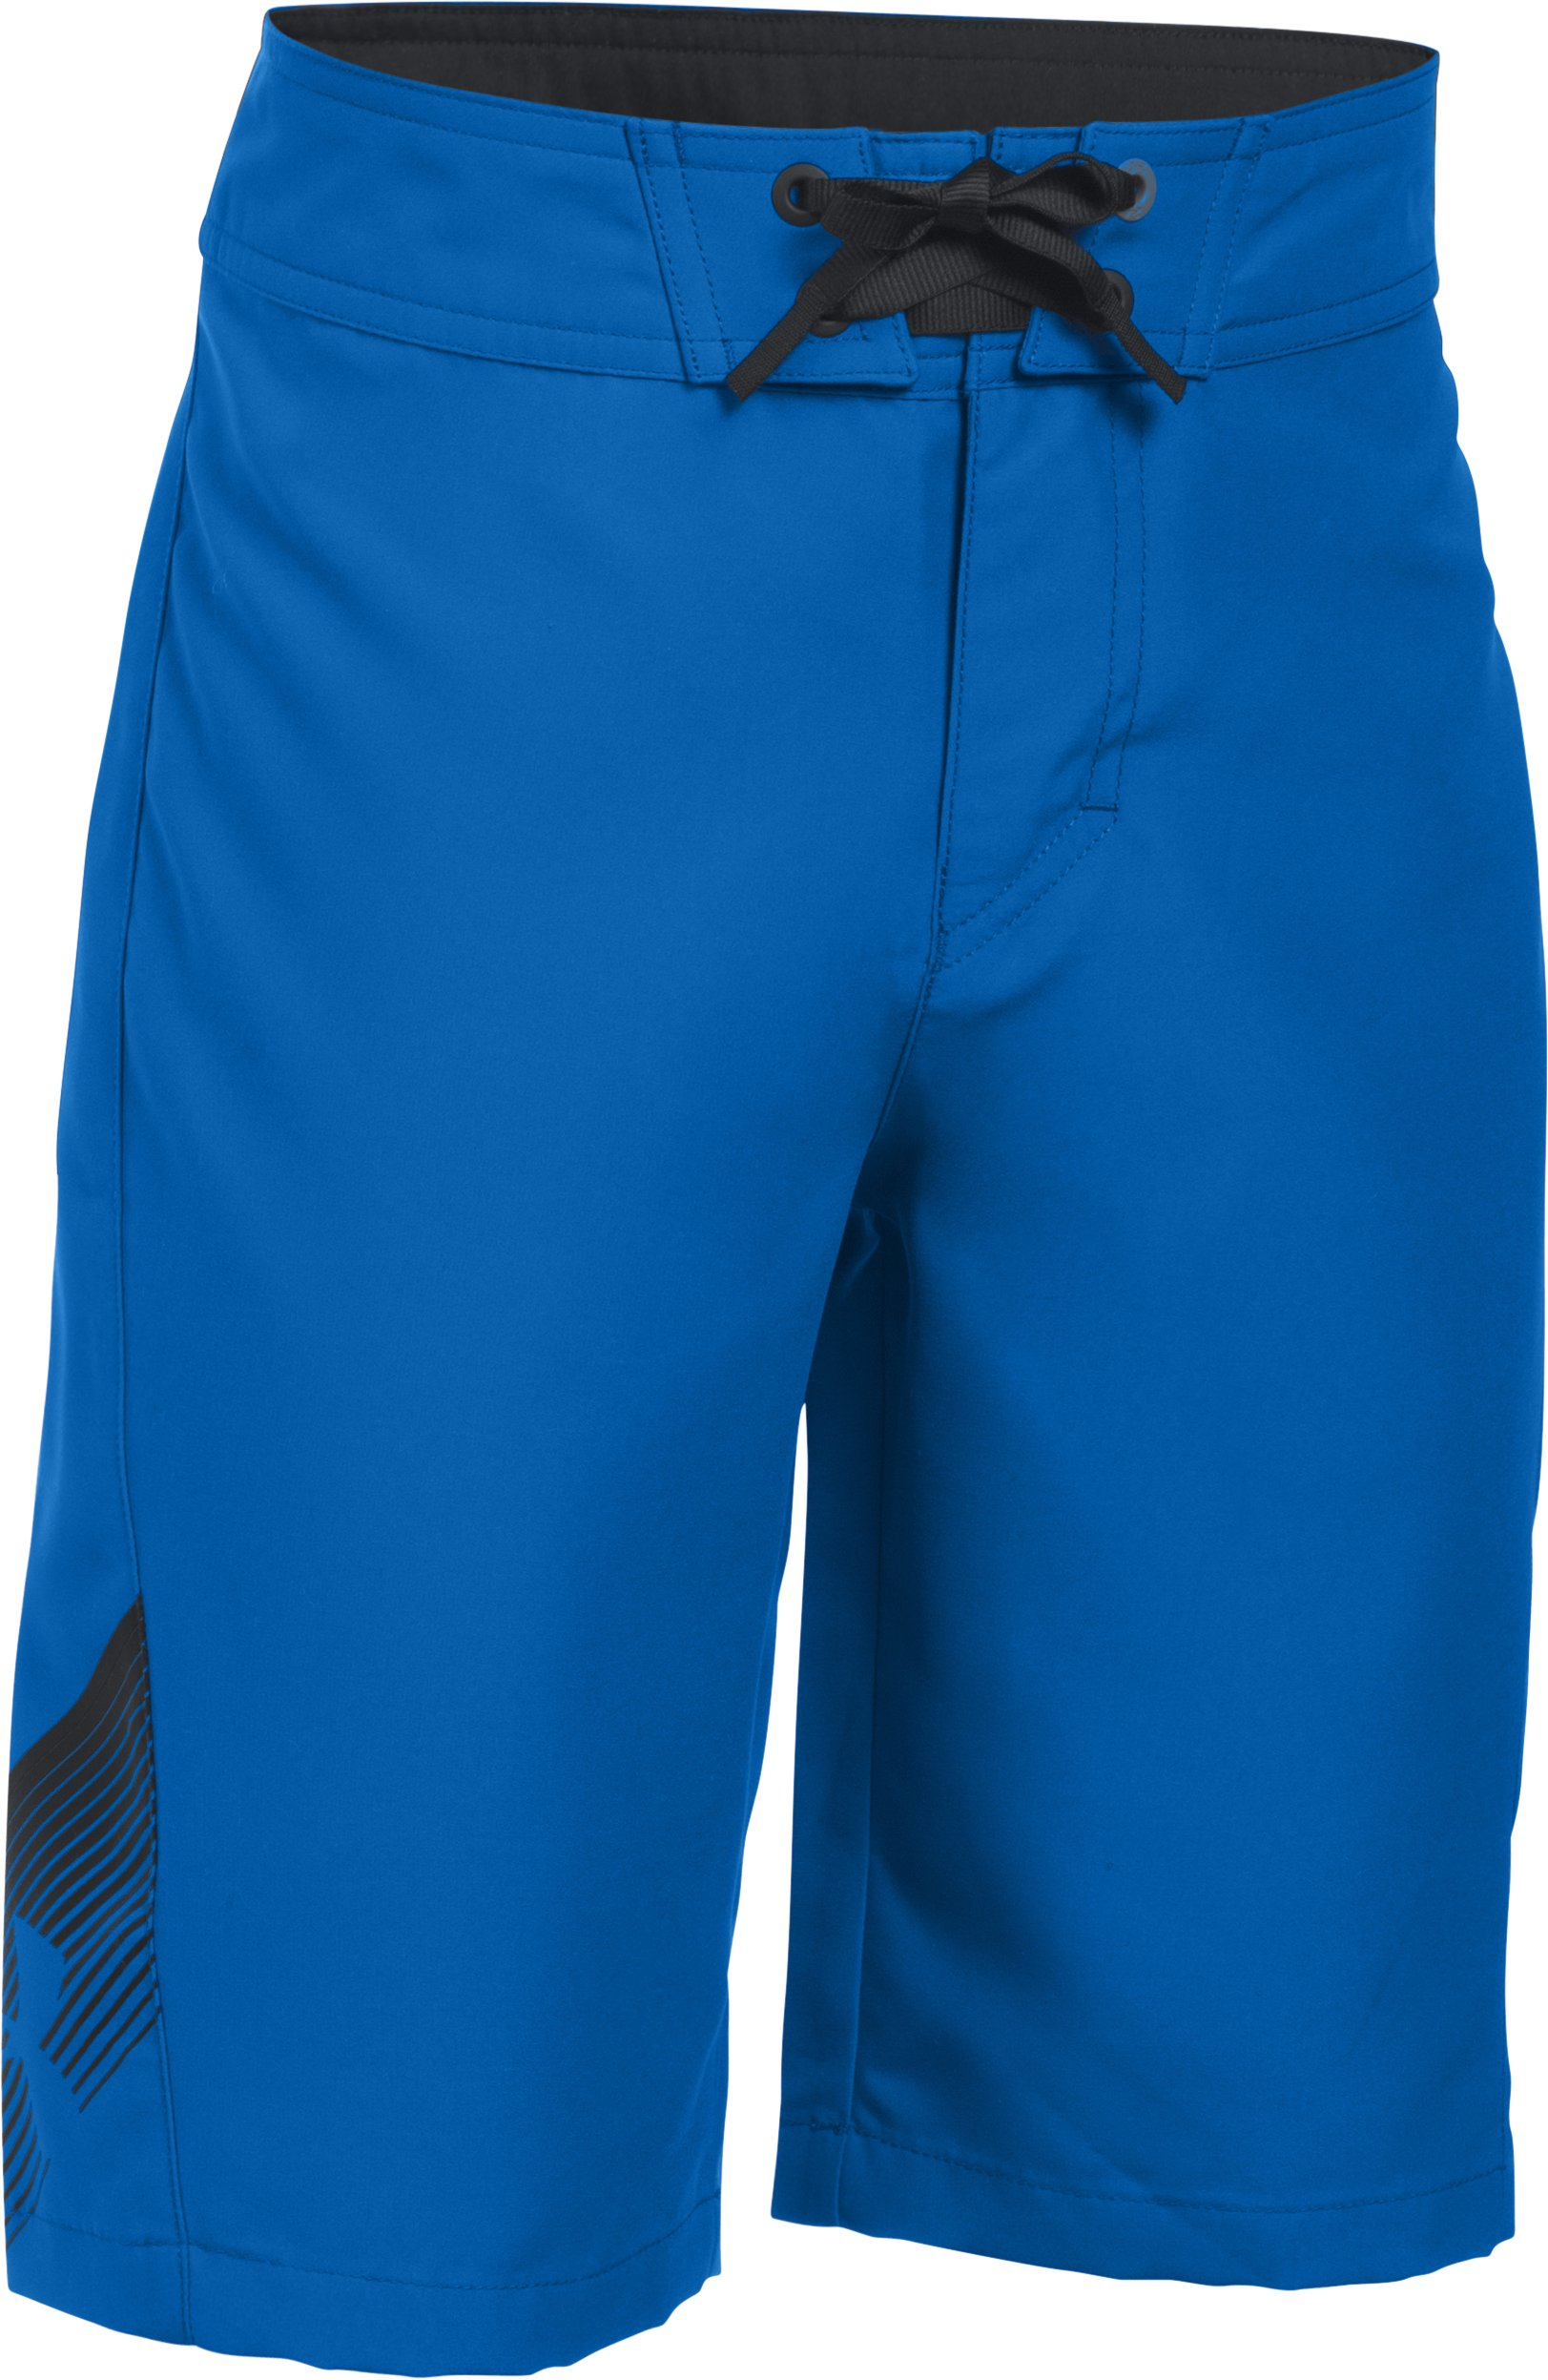 Boys' UA Rigid Boardshorts, ULTRA BLUE